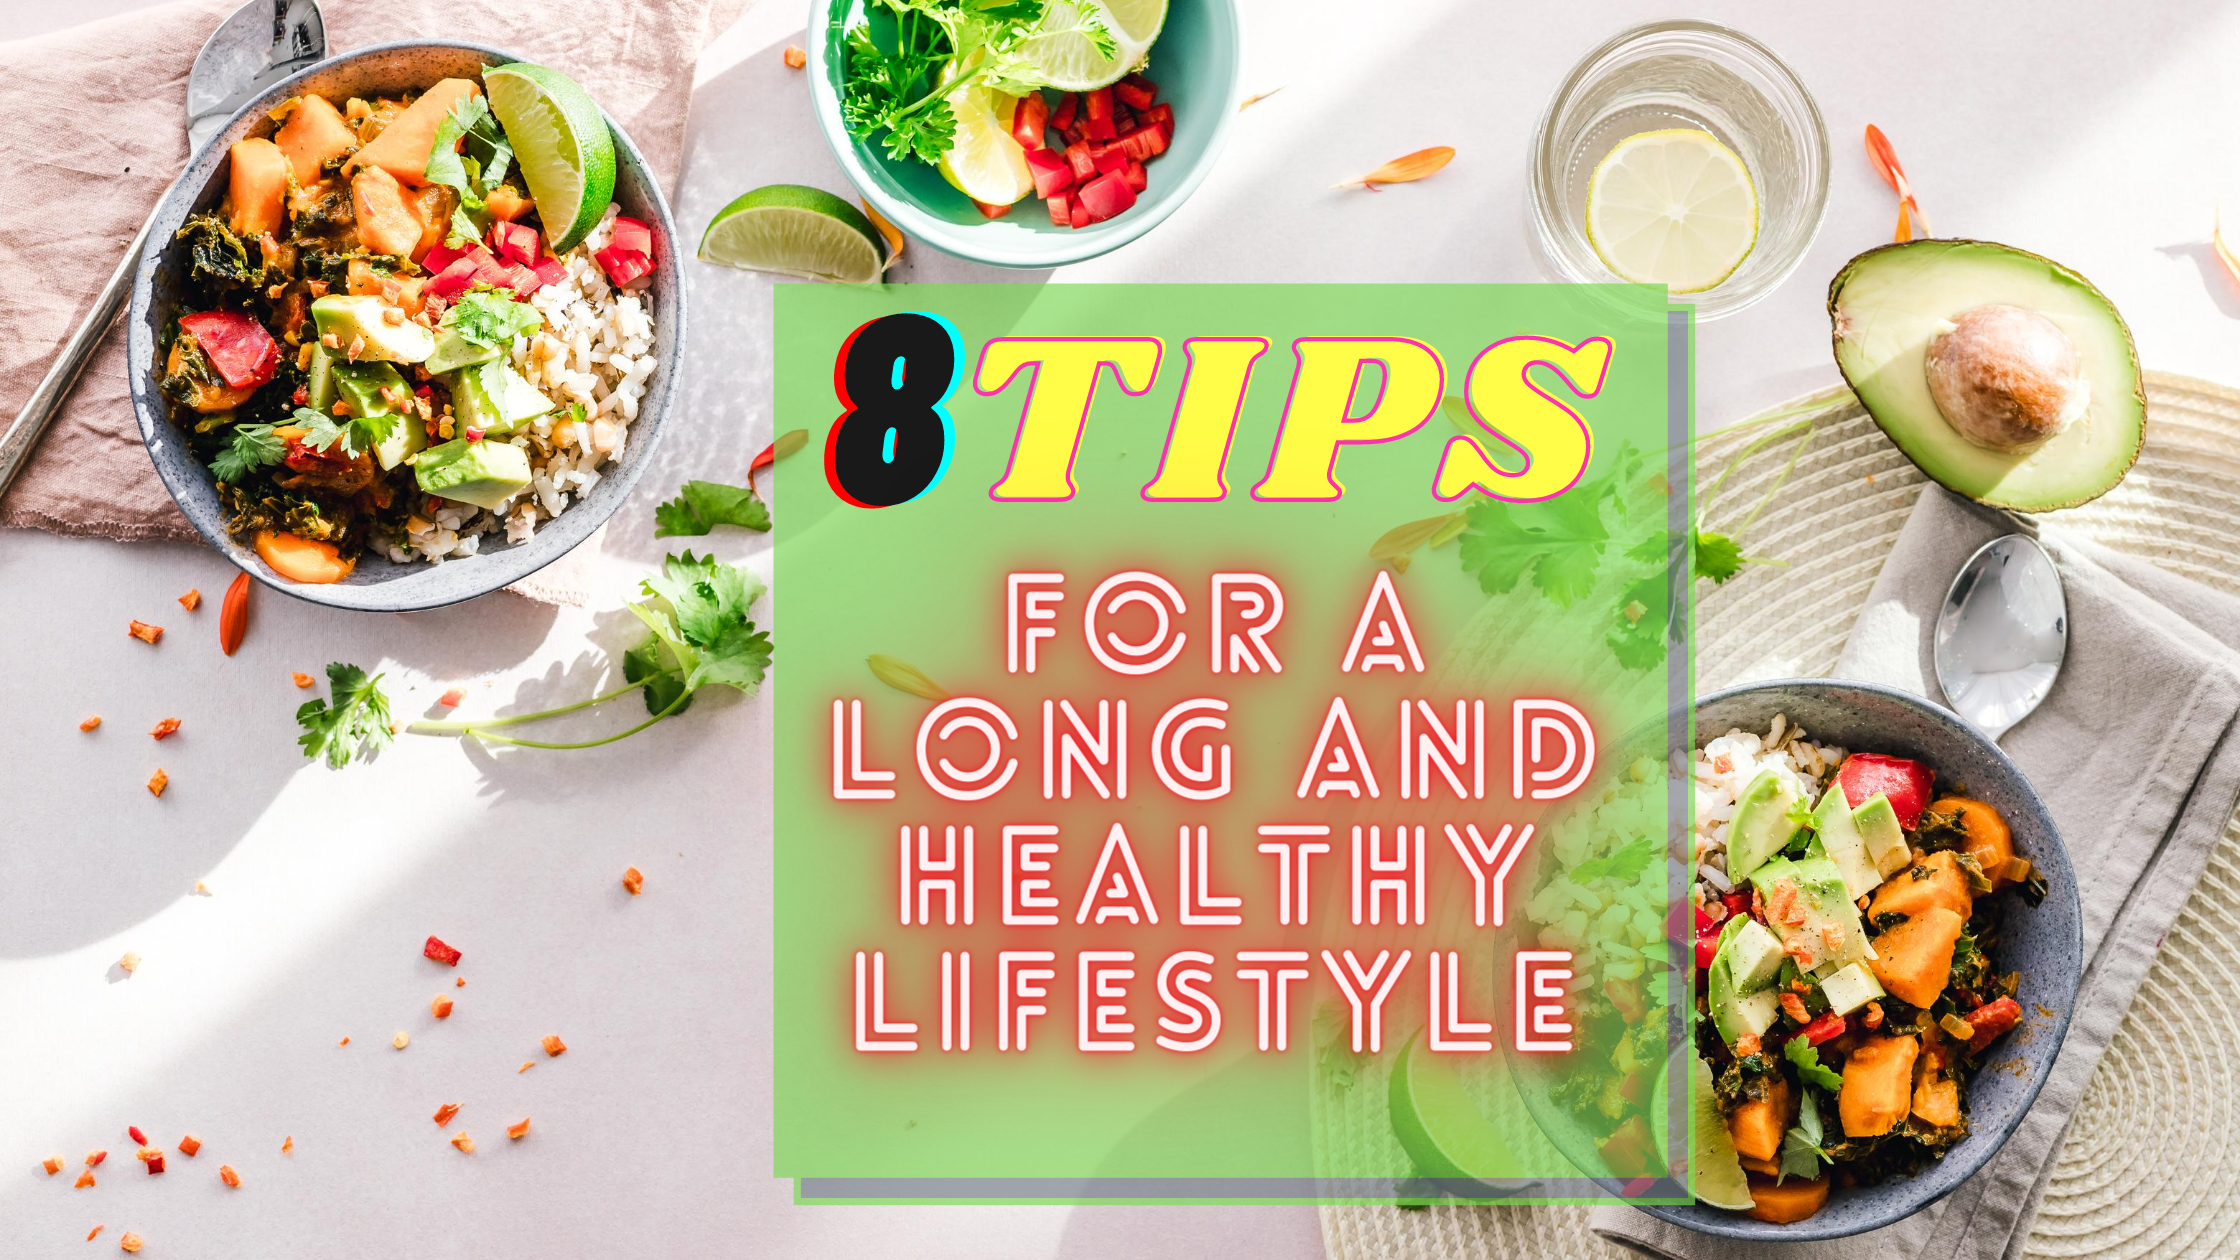 You are currently viewing HEALTHY LIFESTYLE :8 TIPS FOR A LONG AND HEALTHY LIFESTYLE